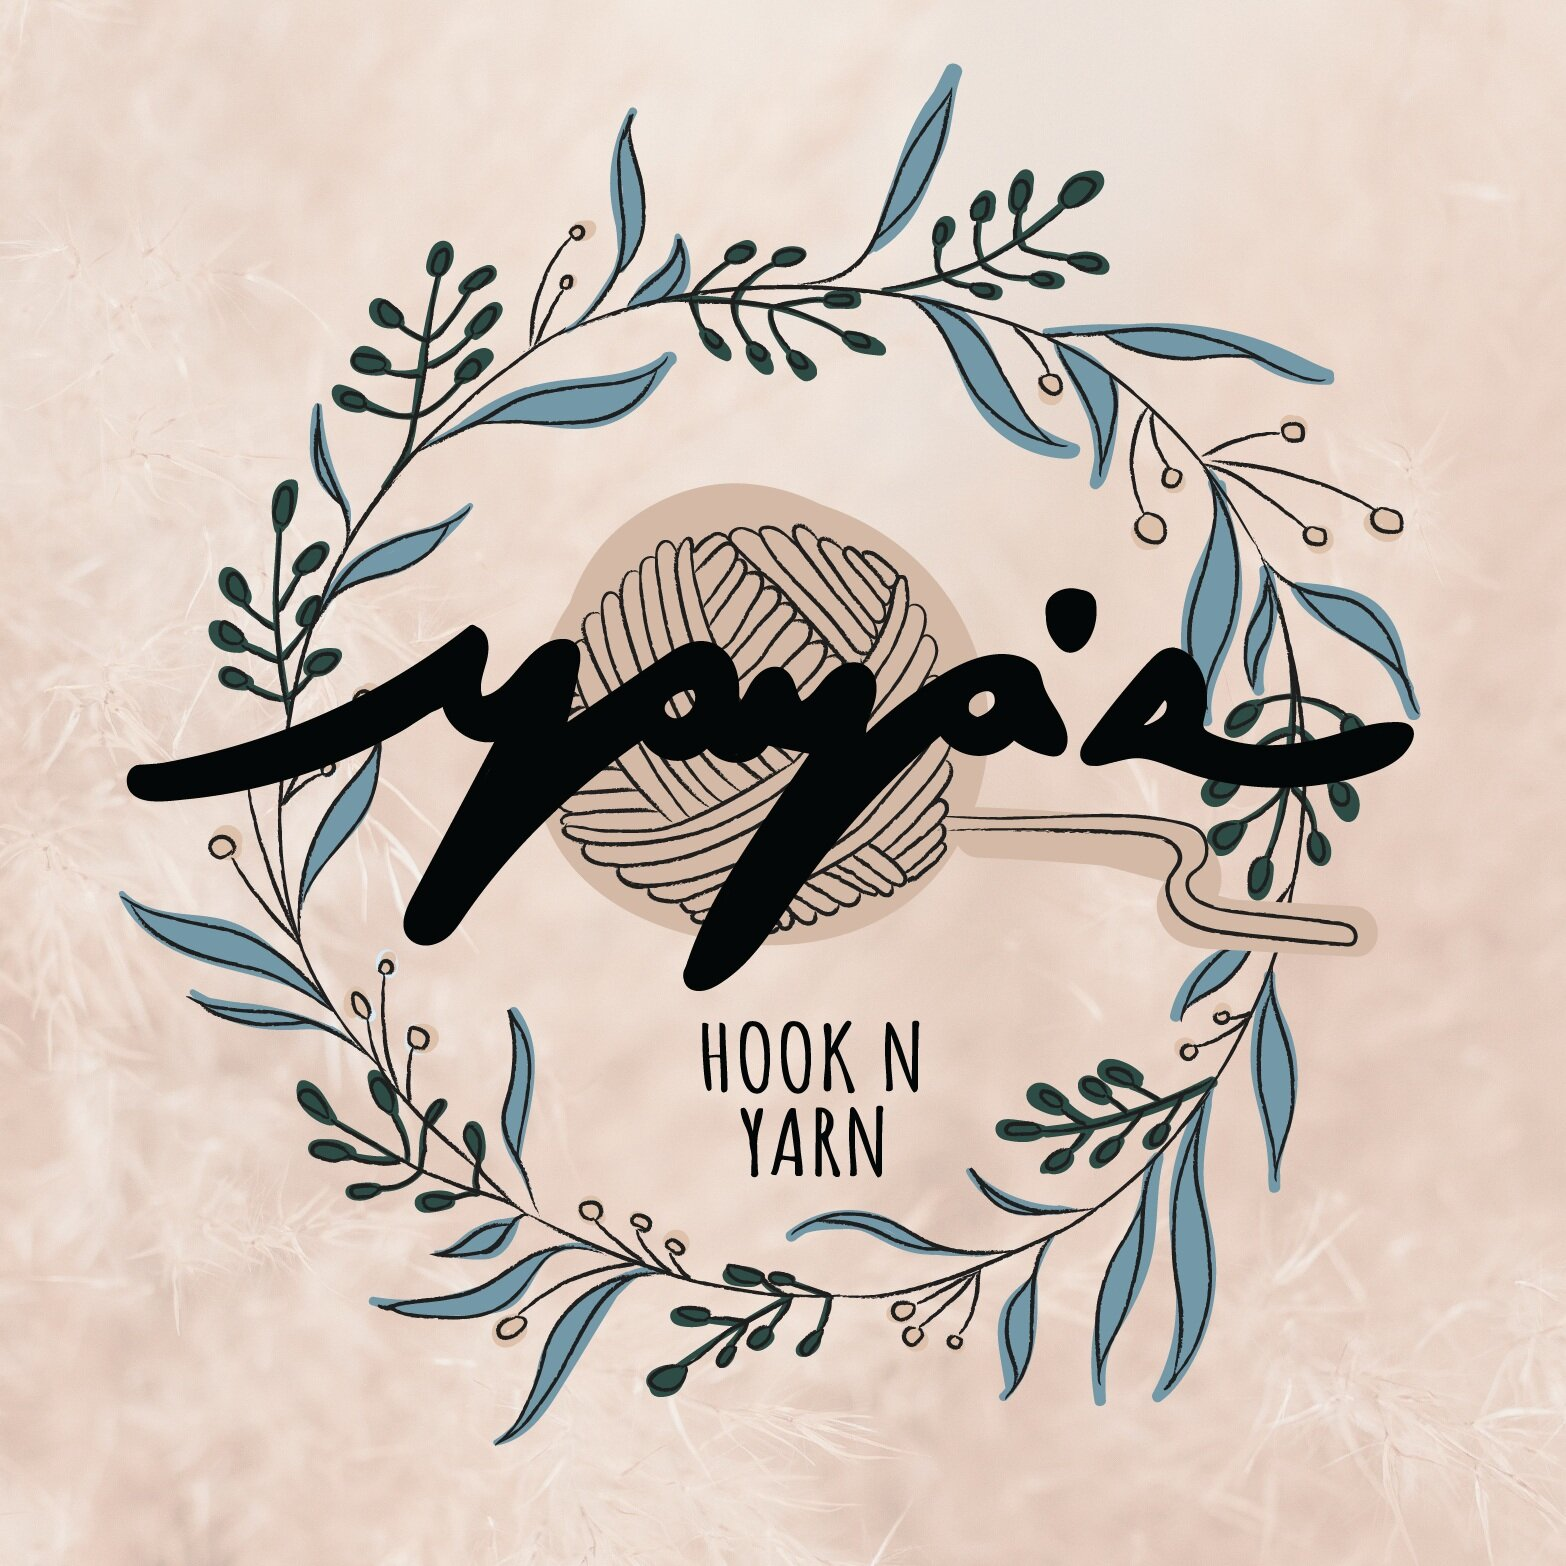 Yaya's Hooks N Yarn Brand Development